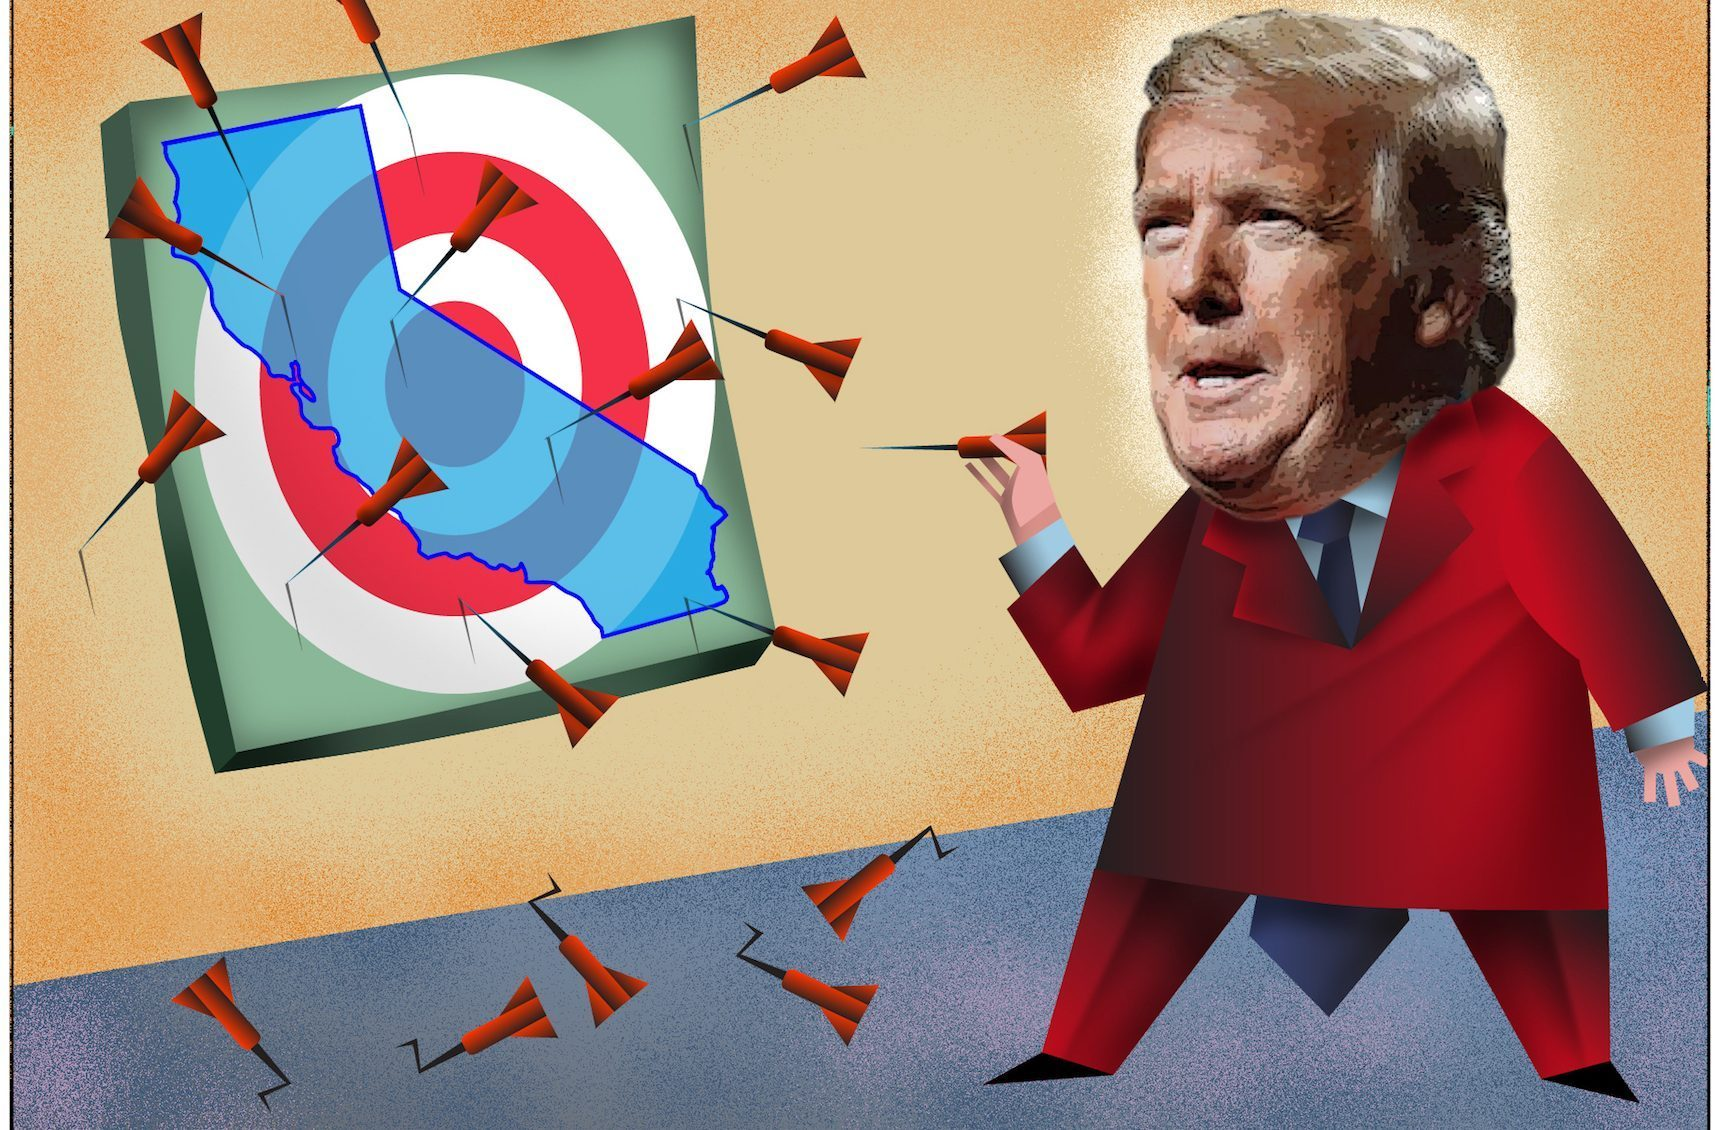 President Donald Trump, in his 2020 reelection bid, often seems to be campaigning against California —evoking it as a Democratic dystopia. Illustration by Dan Hubig for CalMatters